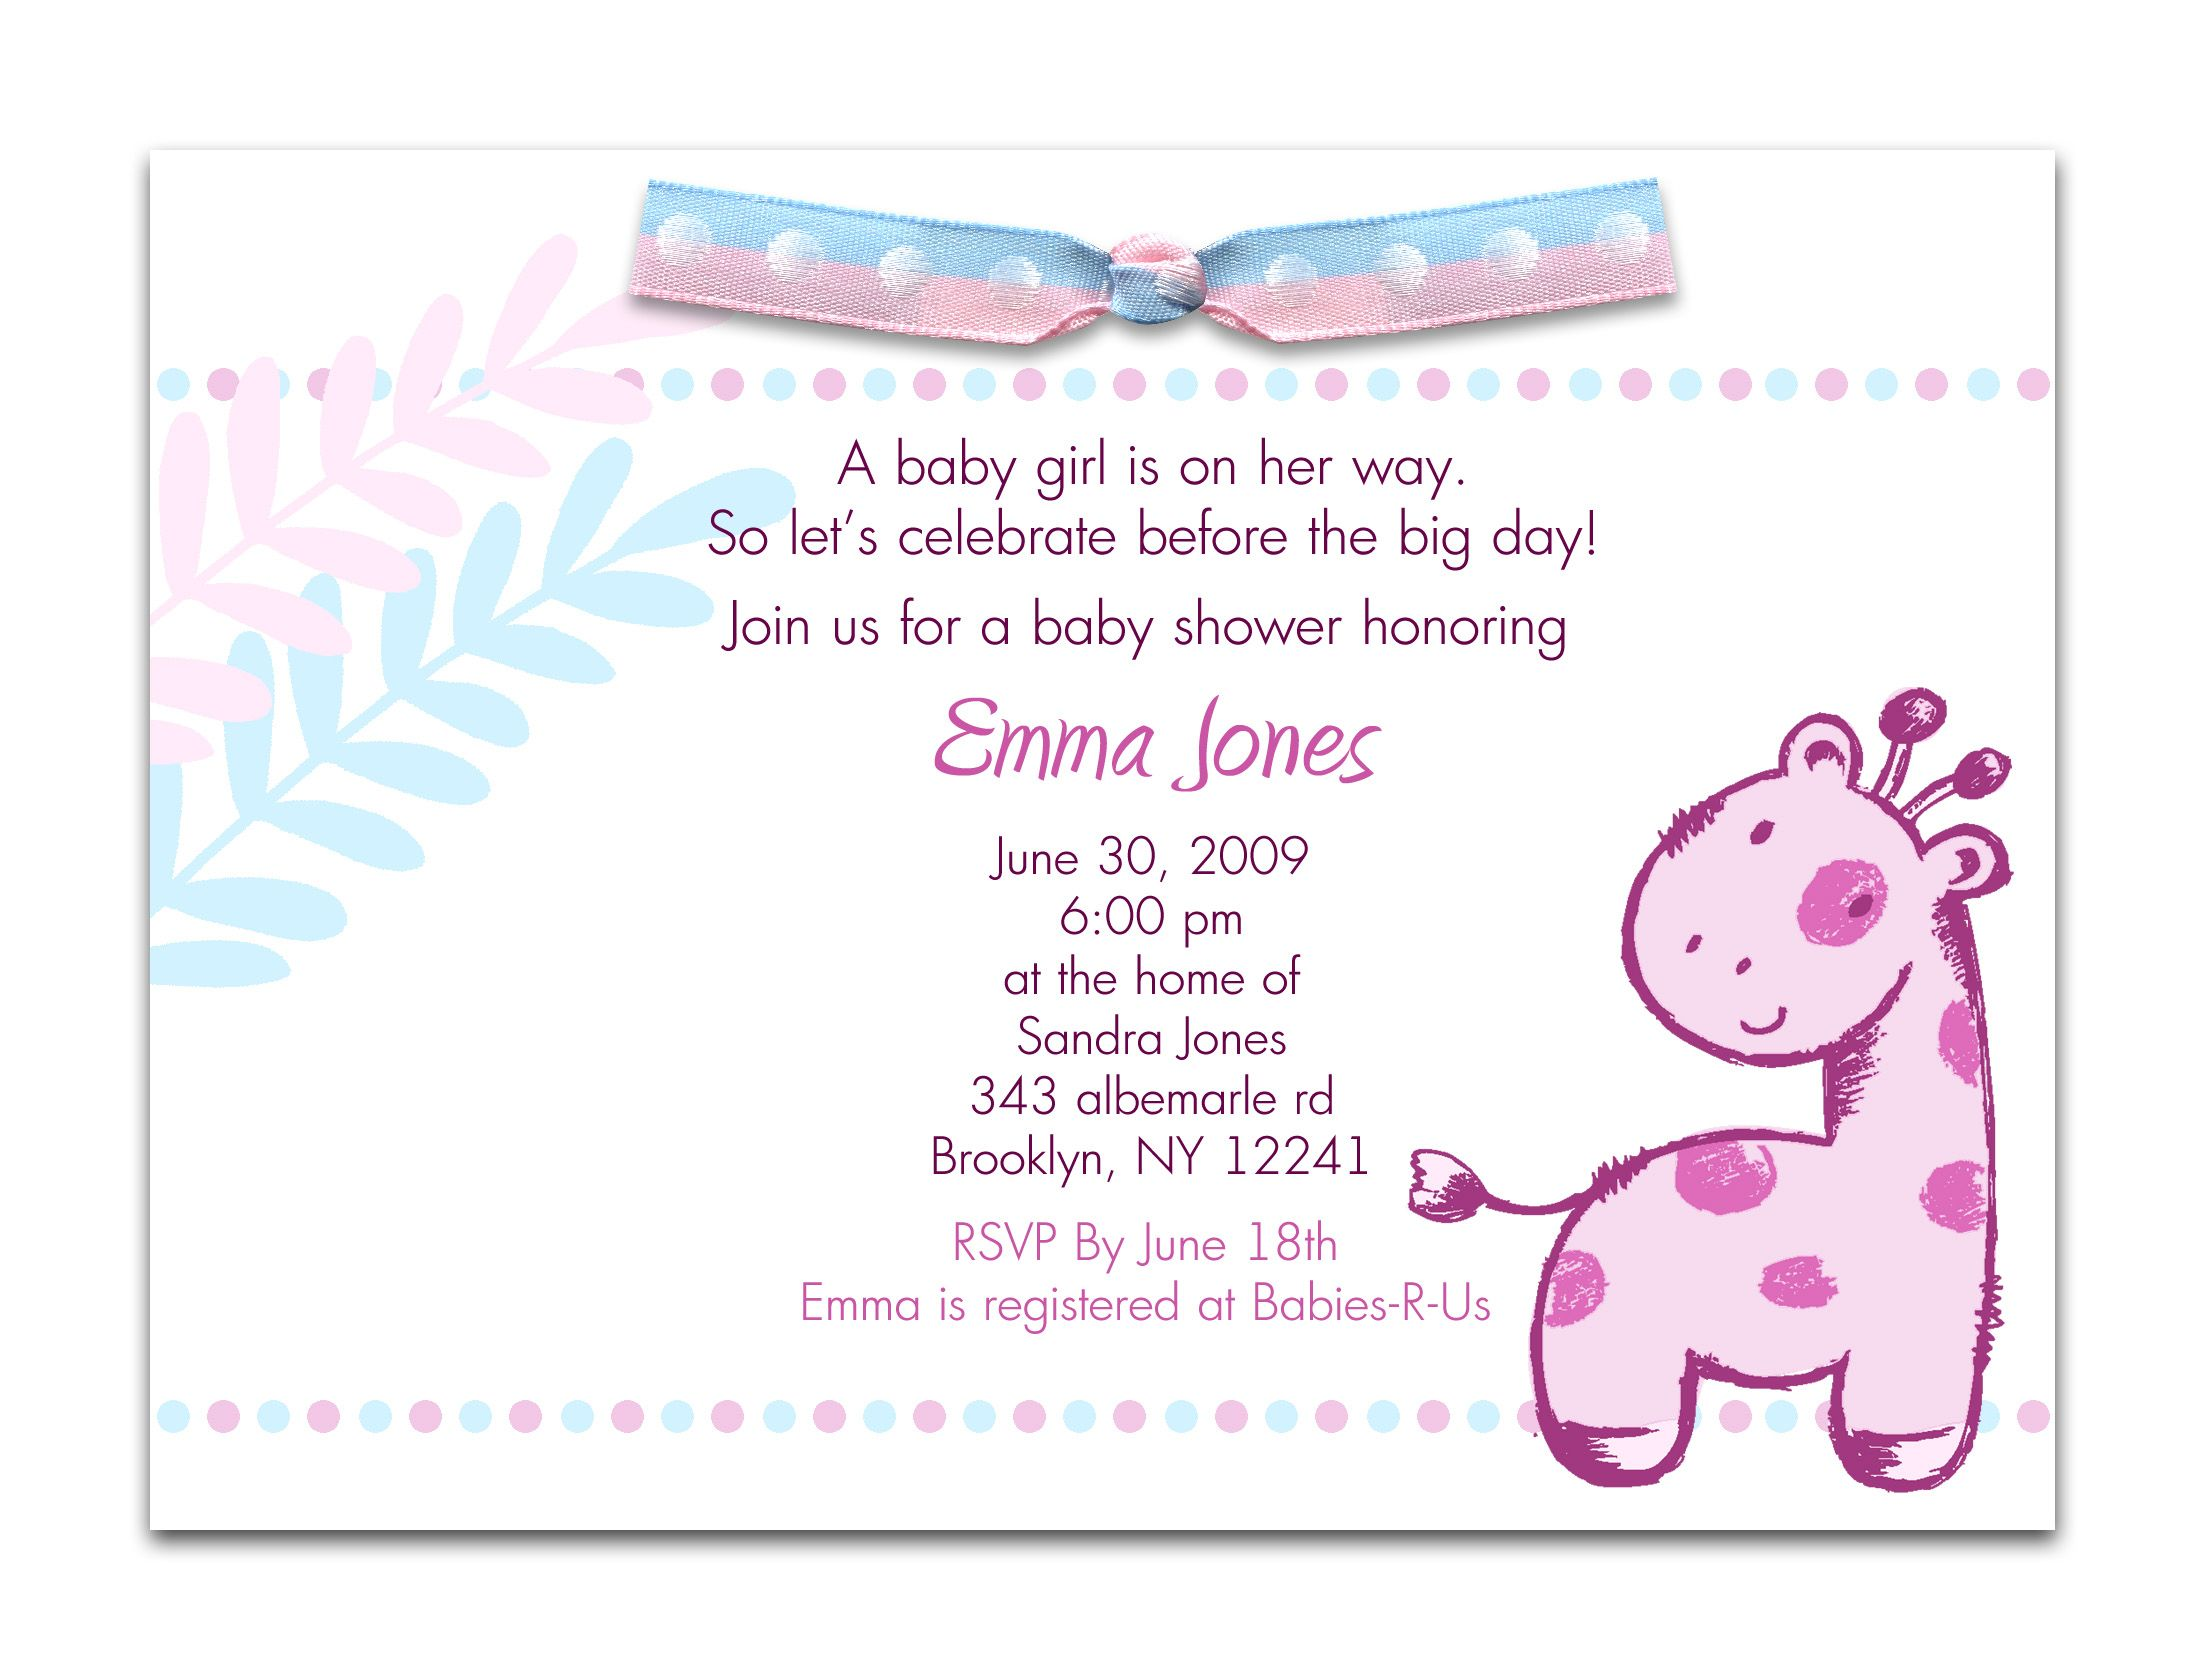 Baby Shower Invitations Card Simple Design Baby Shower – How to Word a Baby Shower Invitation